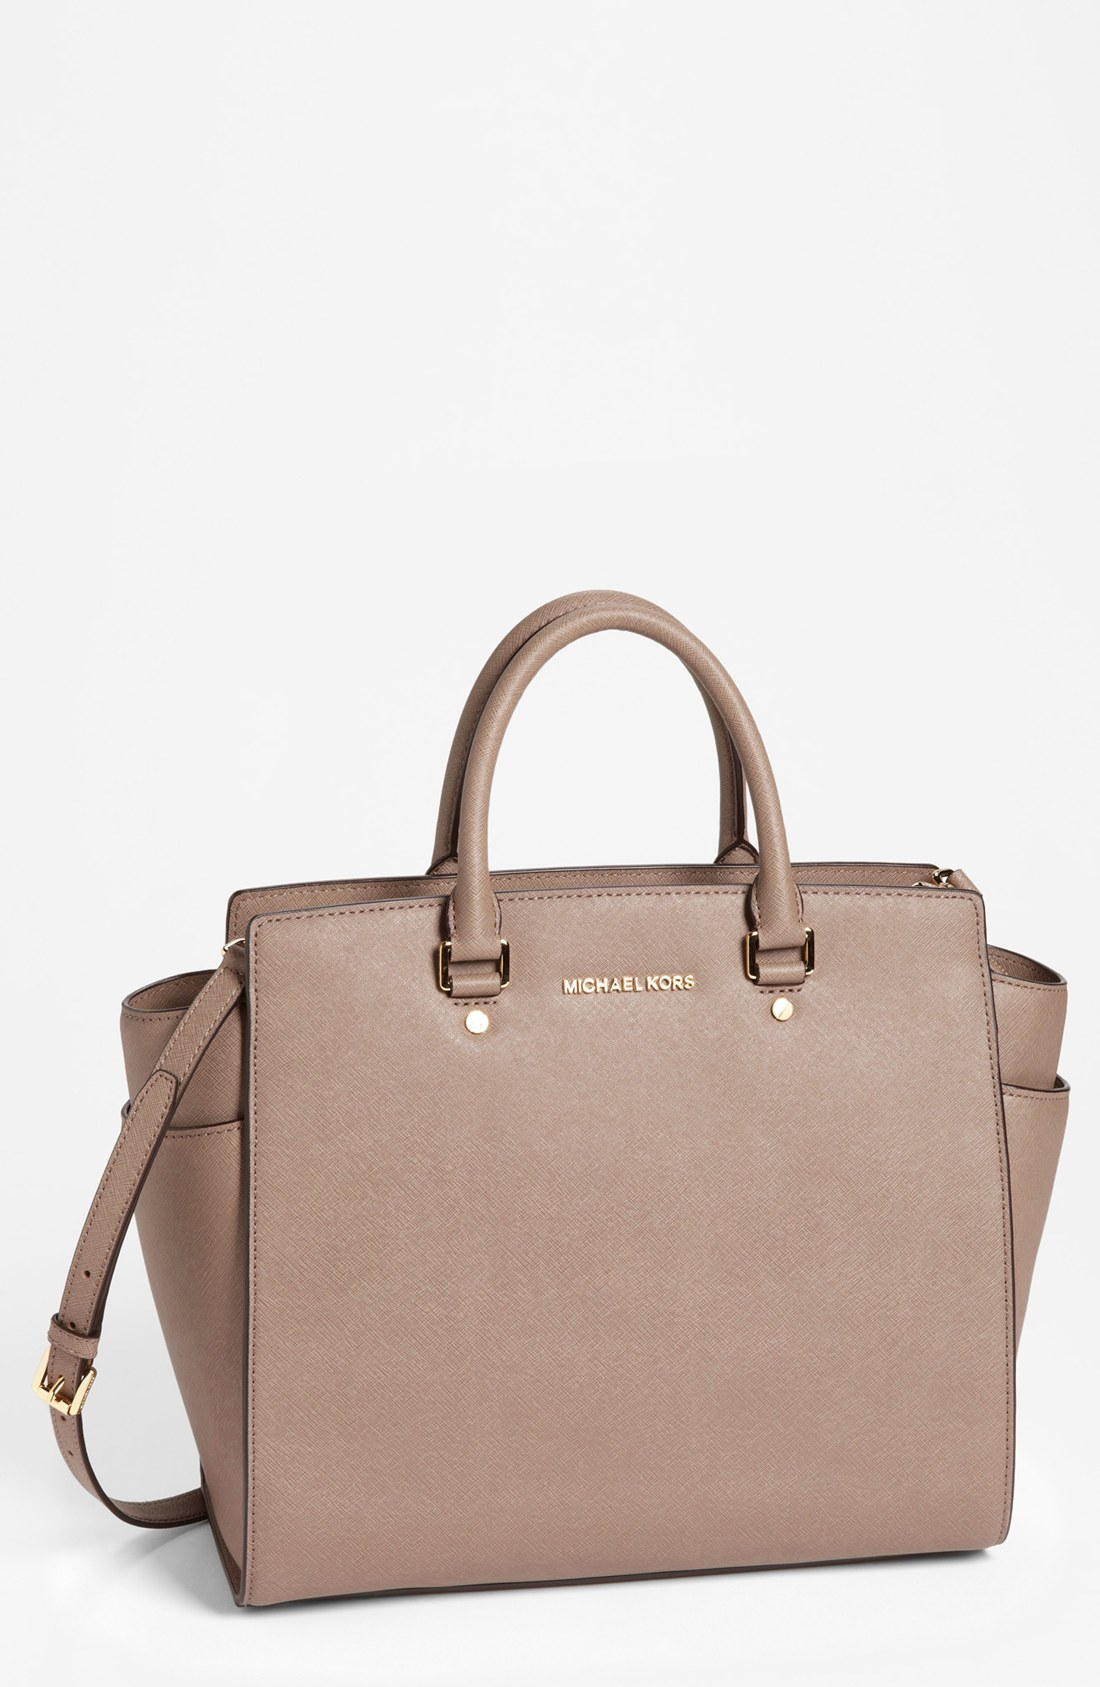 michael michael kors selma saffiano leather tote in natural lyst. Black Bedroom Furniture Sets. Home Design Ideas